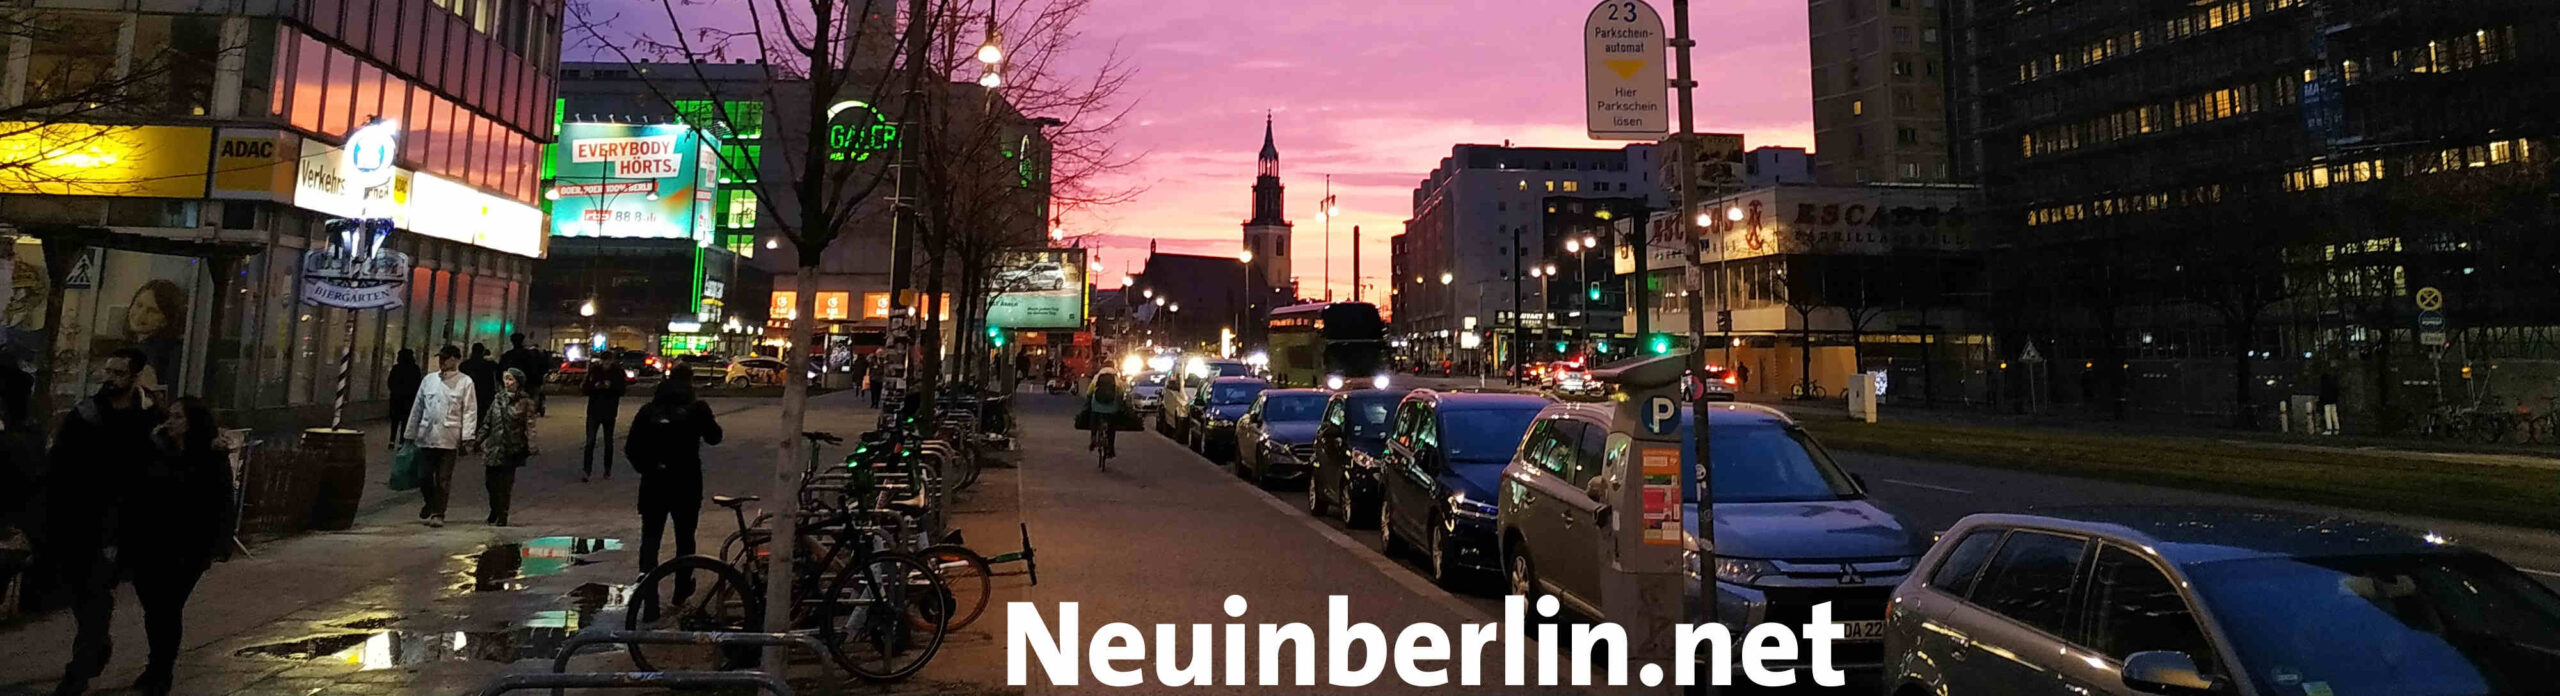 Neu in Berlin